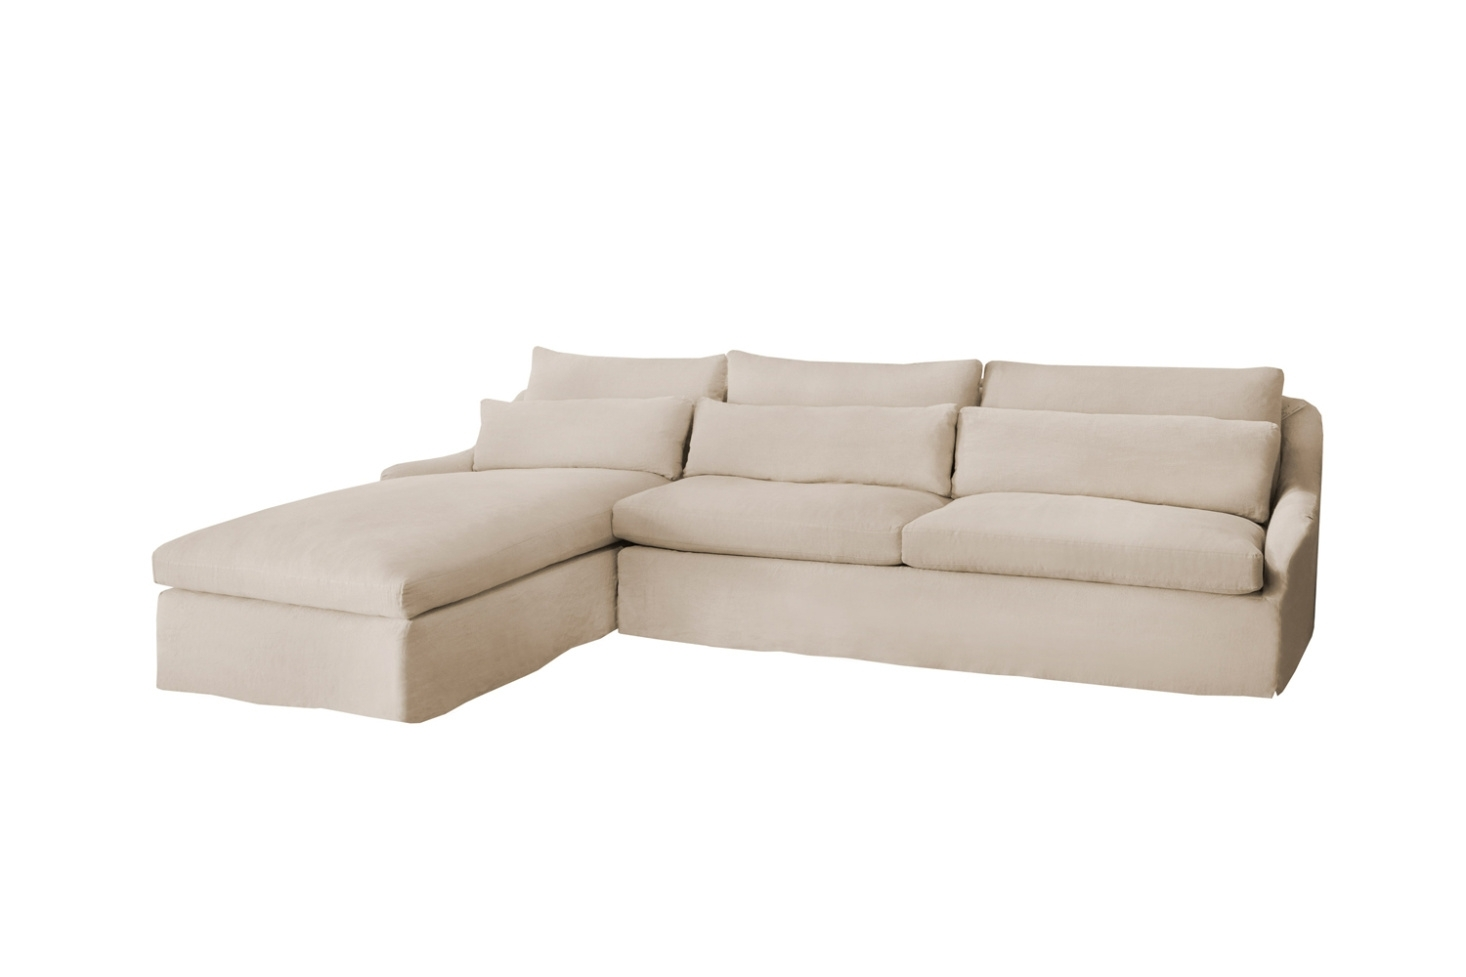 10 Easy Pieces: Sectional Chaise Sofas – Remodelista Intended For Elm Grande Ii 2 Piece Sectionals (View 20 of 25)